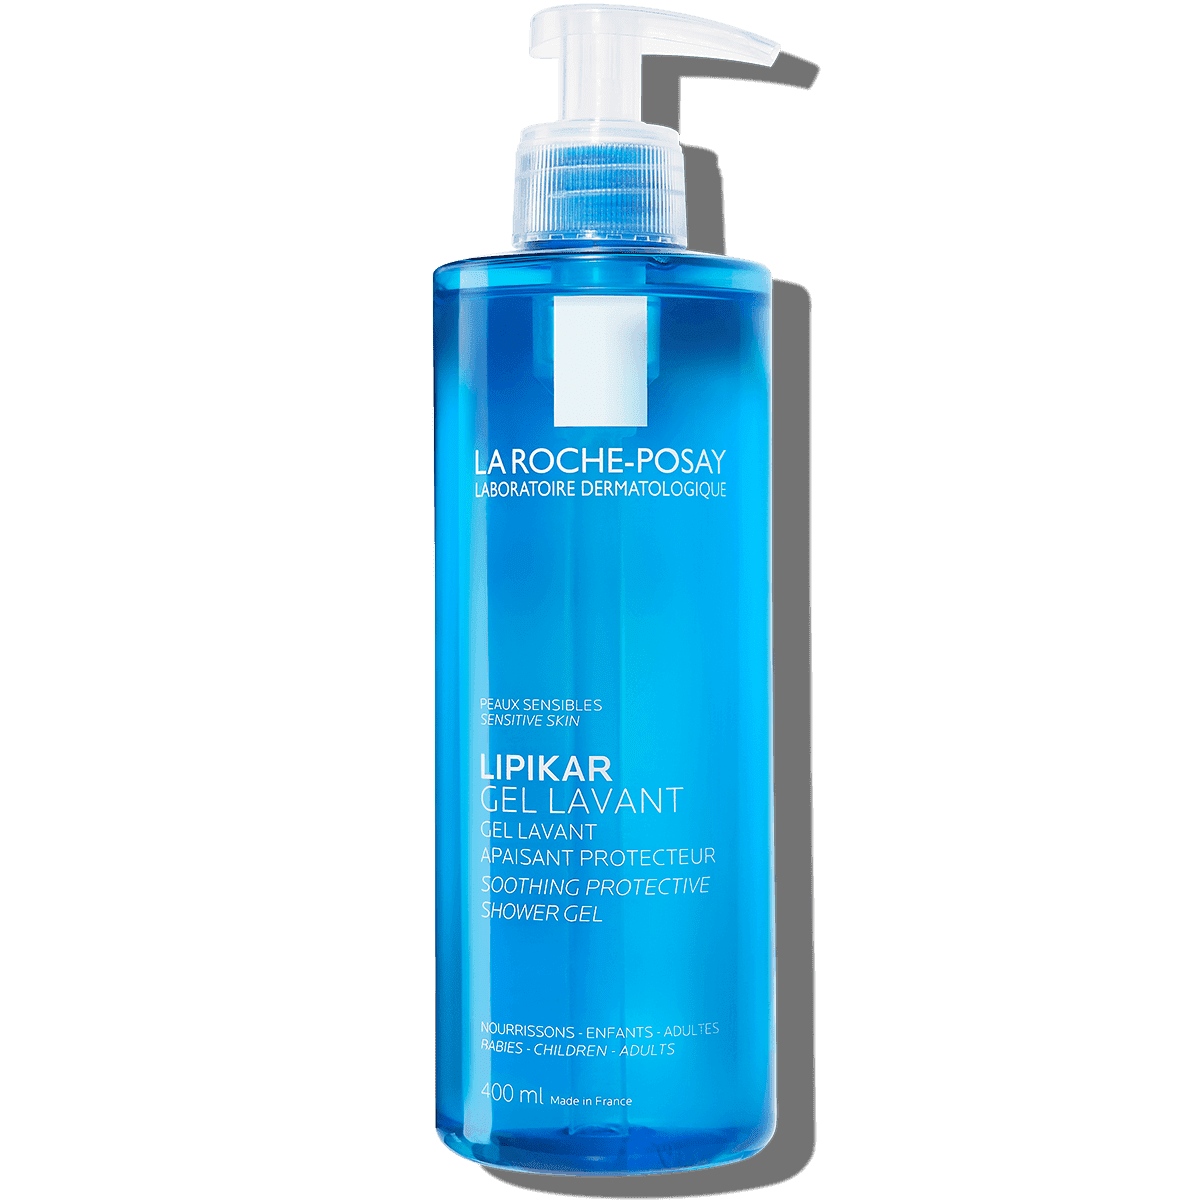 La Roche Posay Body Cleanser Lipikar Gel Lavant 400ml 3337872418785 Fr